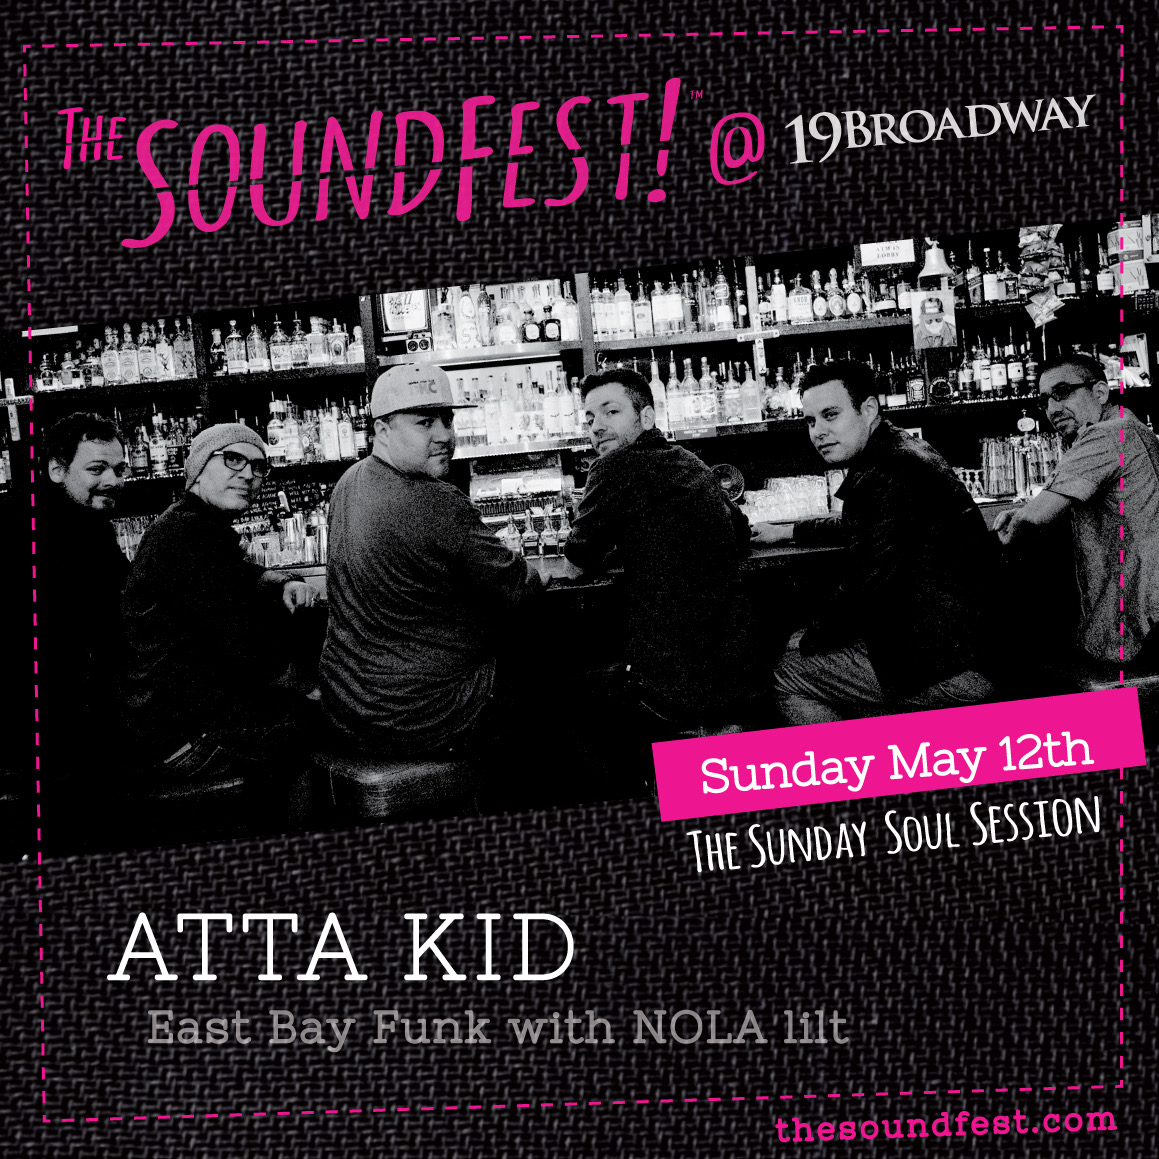 The-SoundFest-at-19B_Bands_Atta-Kid_v1.jpeg